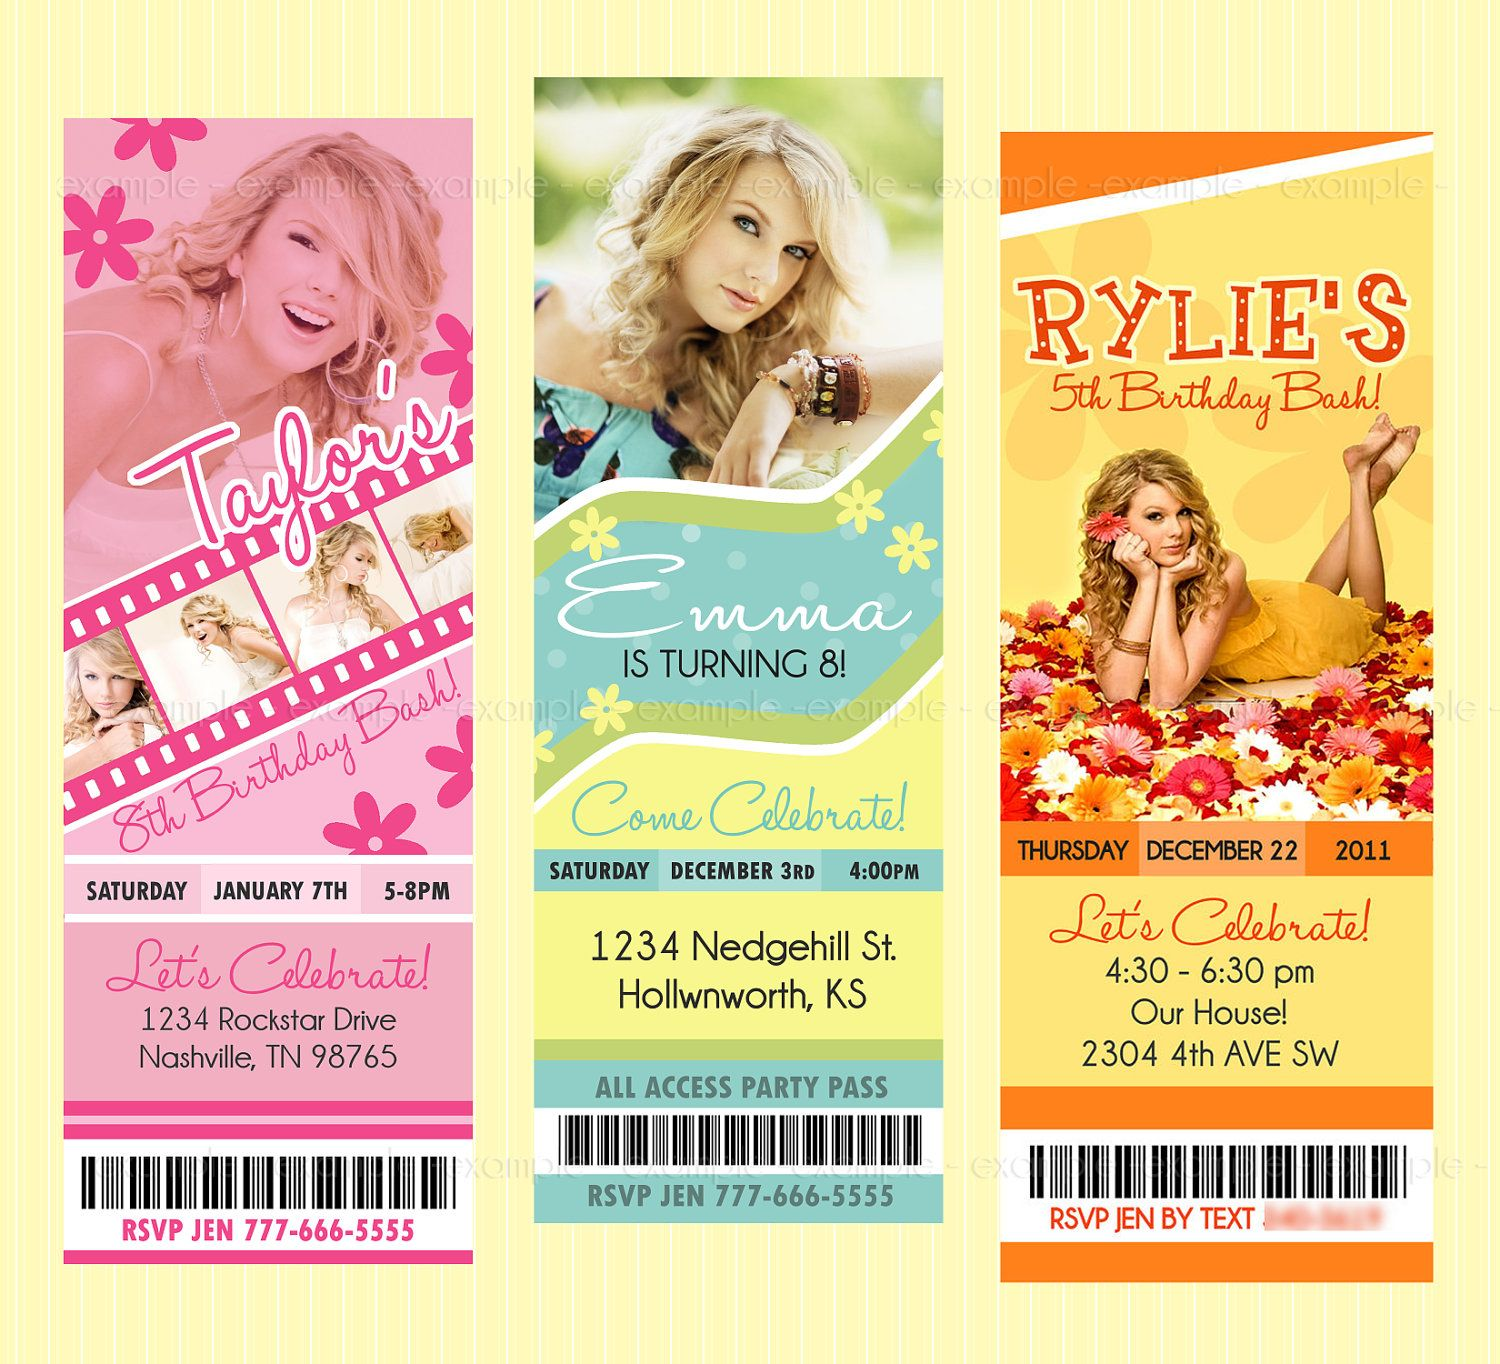 Taylor swift ticket style birthday invites by briezeesboutique taylor swift ticket style birthday invites by briezeesboutique 1299 via etsy filmwisefo